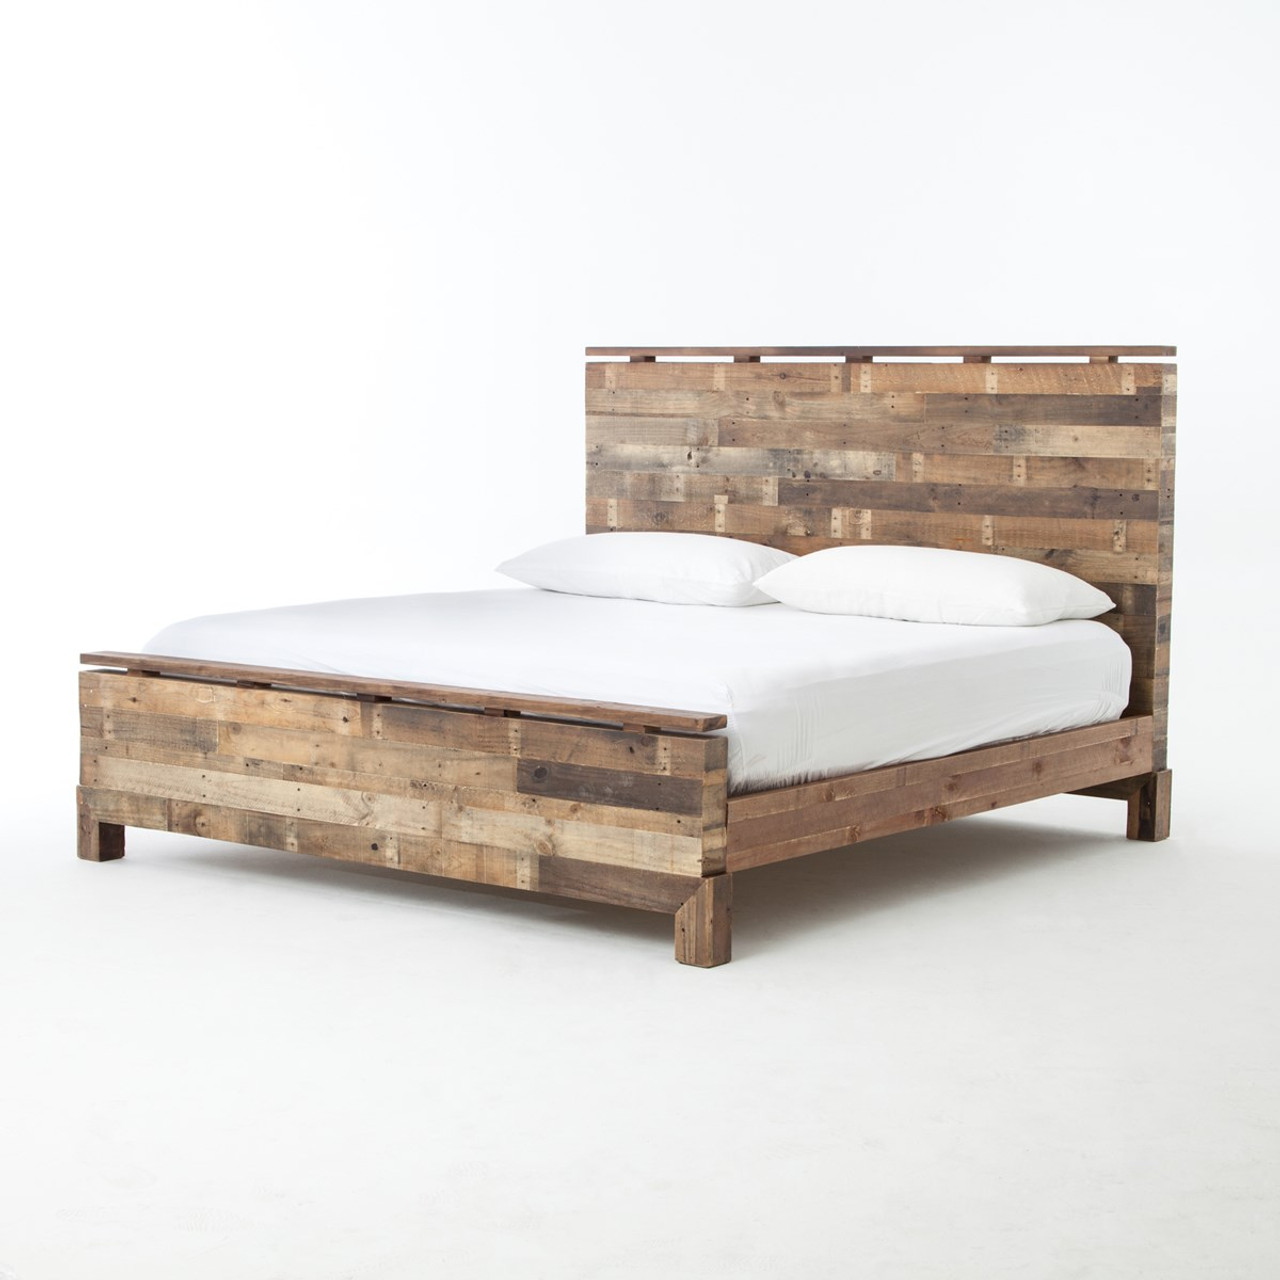 angora rustic reclaimed wood king size platform bed zin home. Black Bedroom Furniture Sets. Home Design Ideas